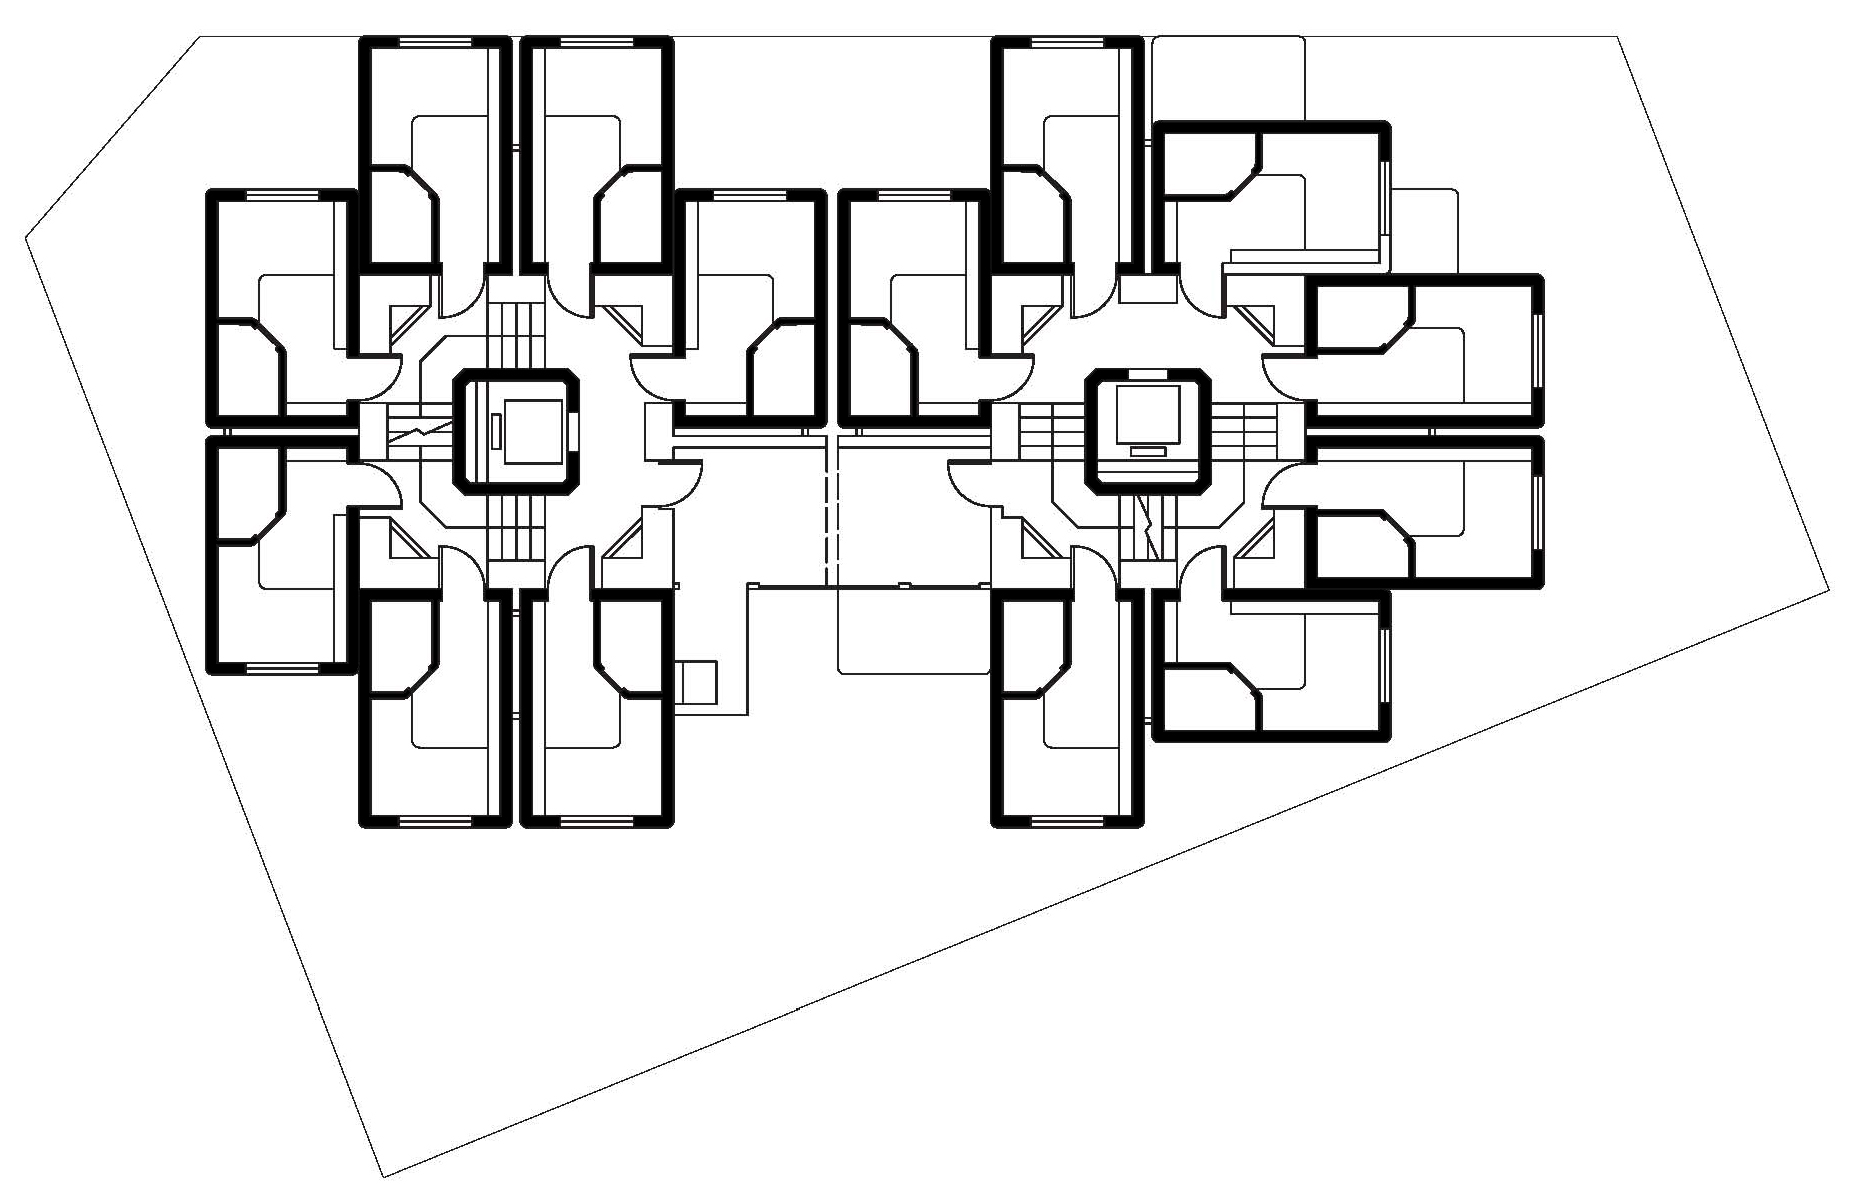 How To Draw Stairs In A Floor Plan Galeria De Cl 225 Ssicos Da Arquitetura Nakagin Capsule Tower